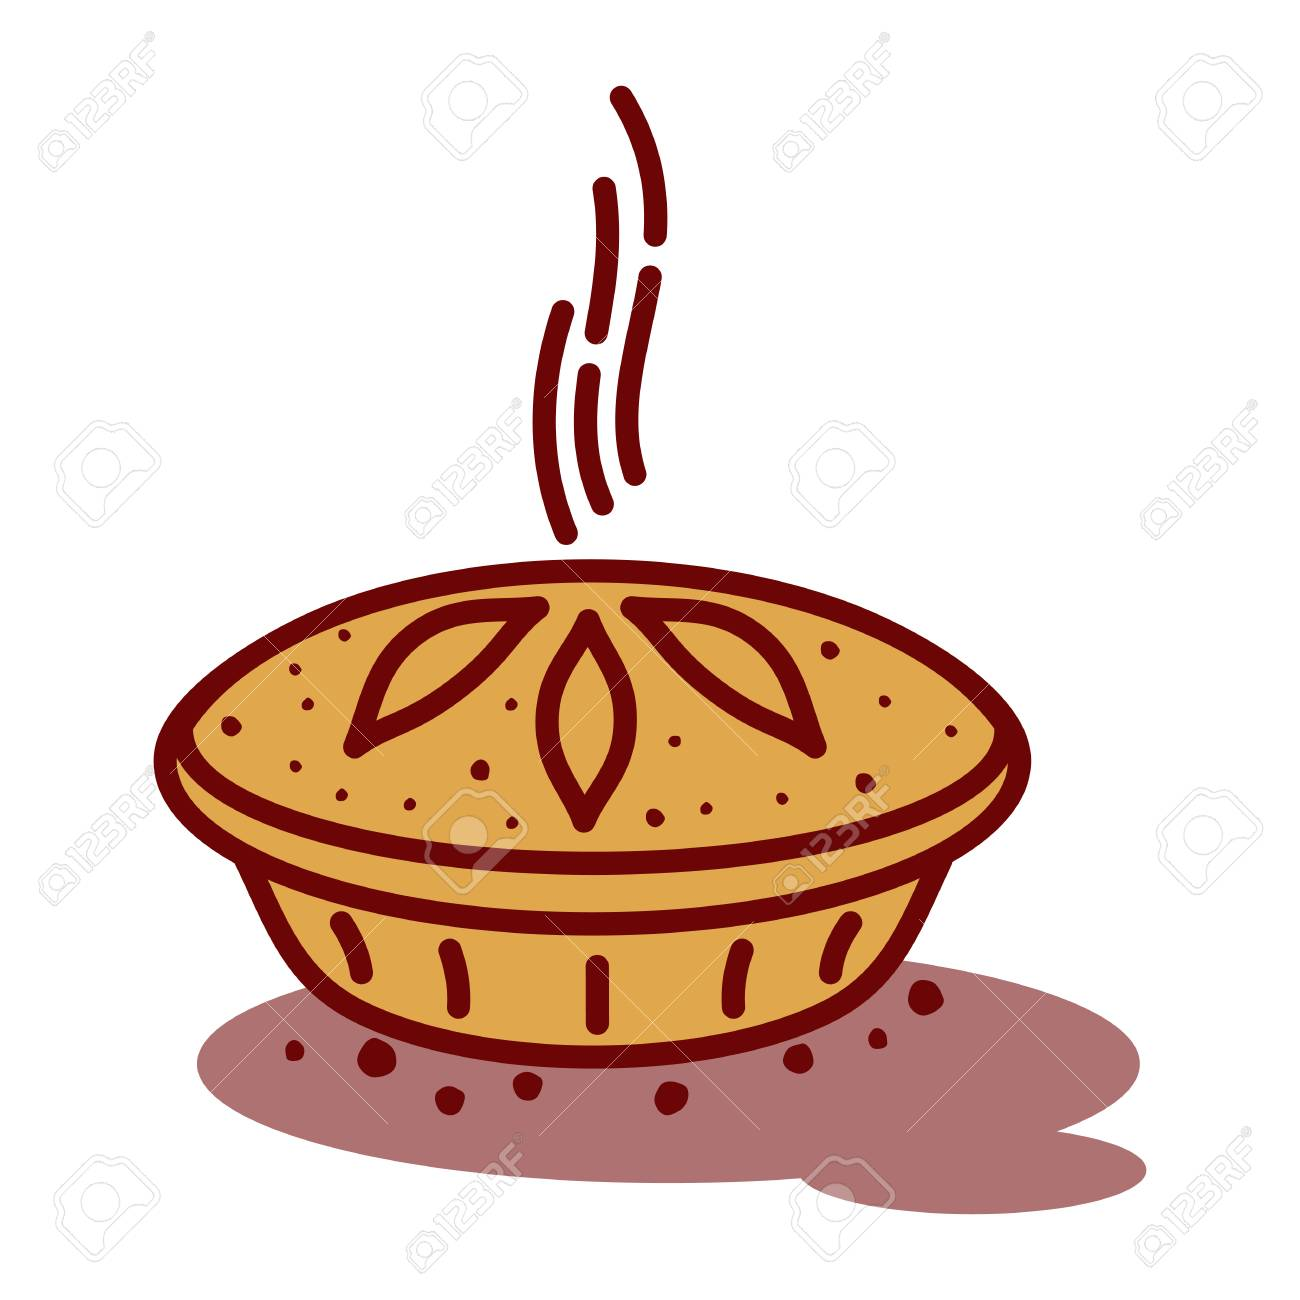 Meat Pie, Roll, Quiche Vector Line Two Color Illustration. Hot,.. Royalty  Free Cliparts, Vectors, And Stock Illustration. Image 94757458.